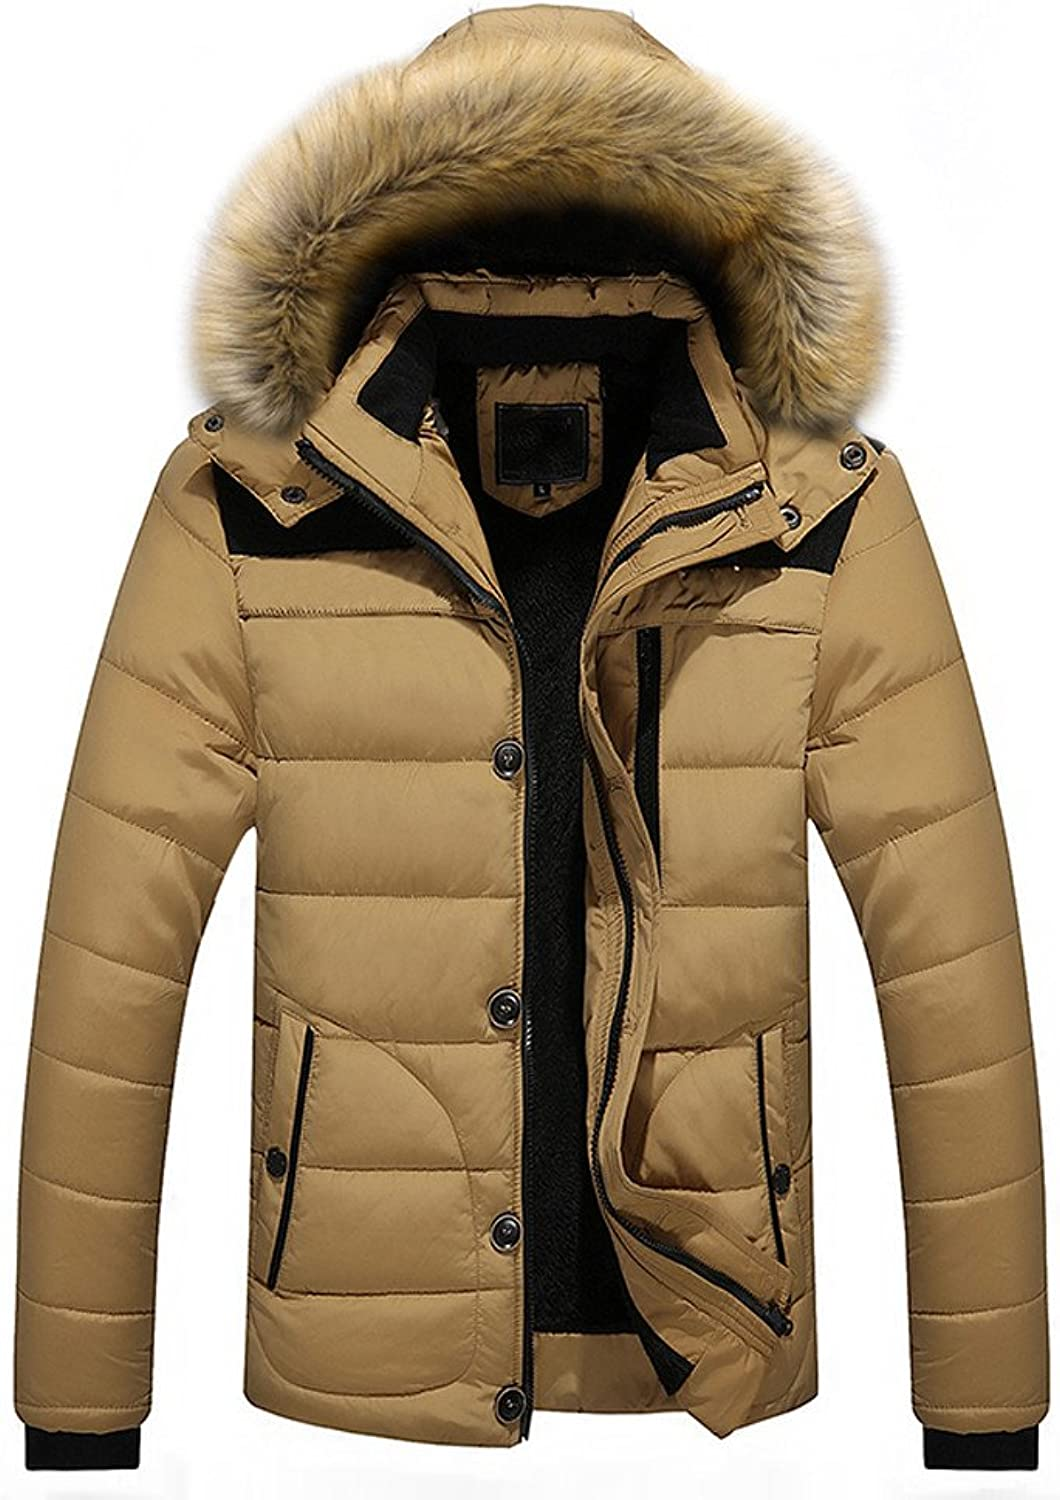 Malbaba Men Outdoor Warm Winter Thick Jacket Plus Fur Hooded Coat Jacket